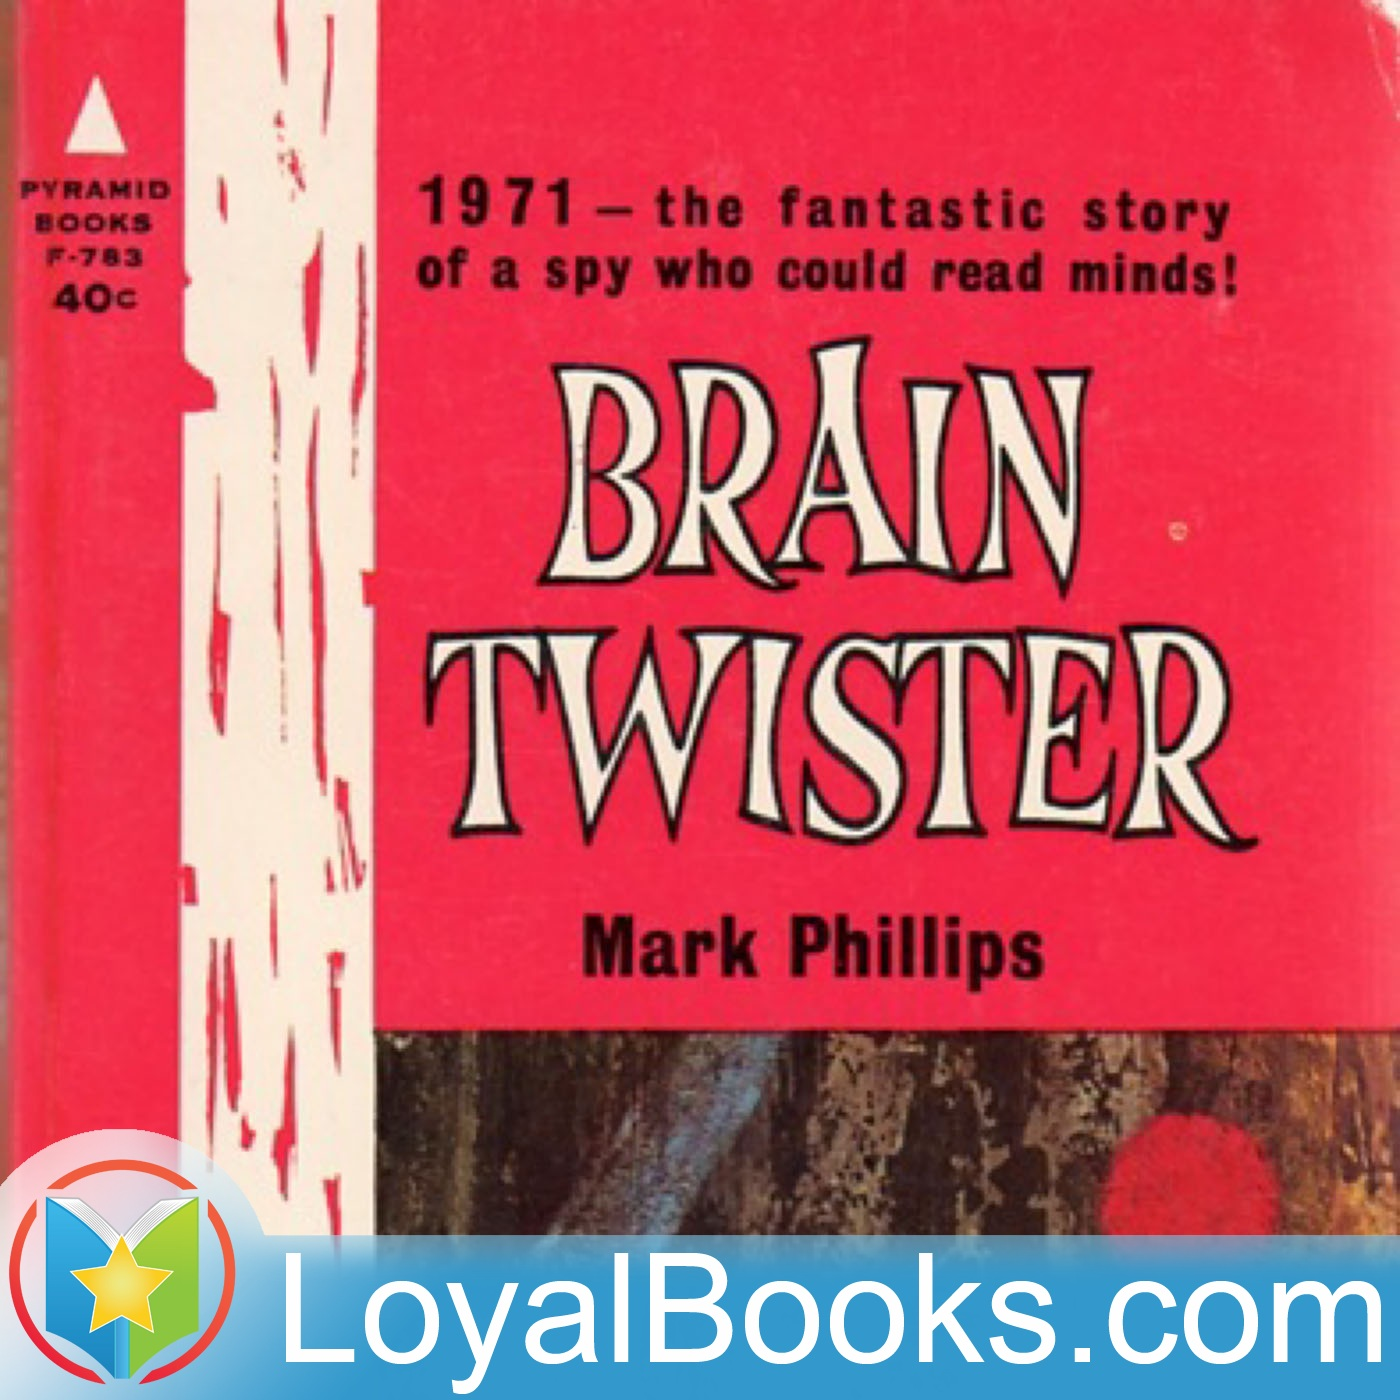 <![CDATA[Brain Twister by Mark Phillips (Randall Garrett and Laurence M. Janifer)]]>